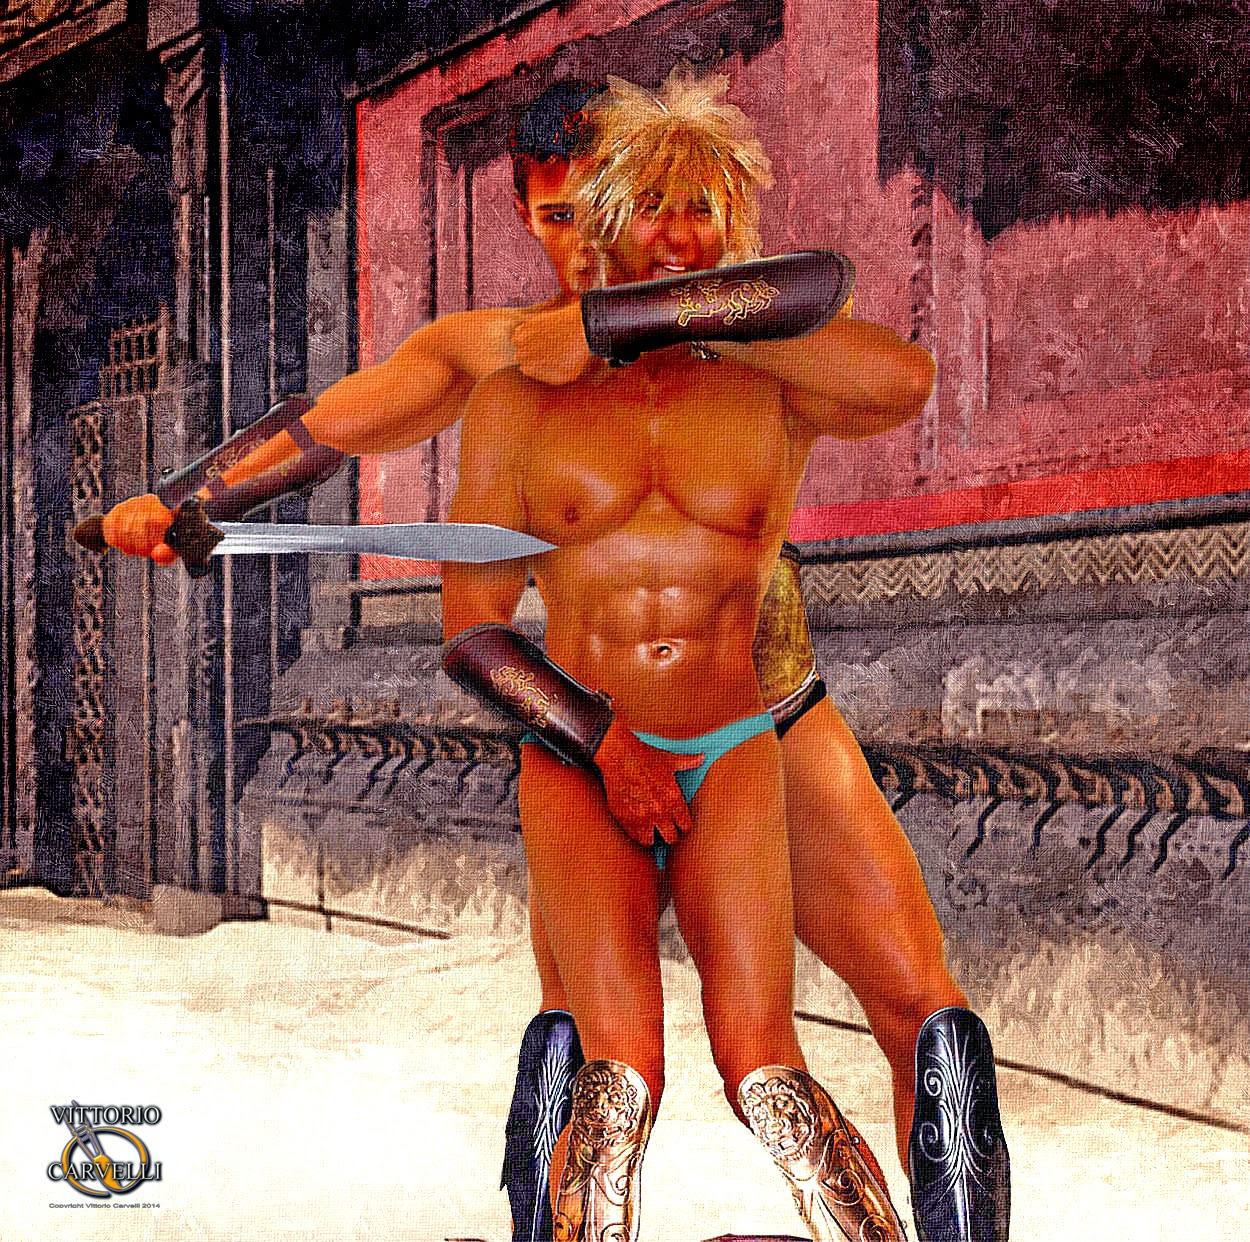 Gladiators party compilations by european gay network on soundcloud